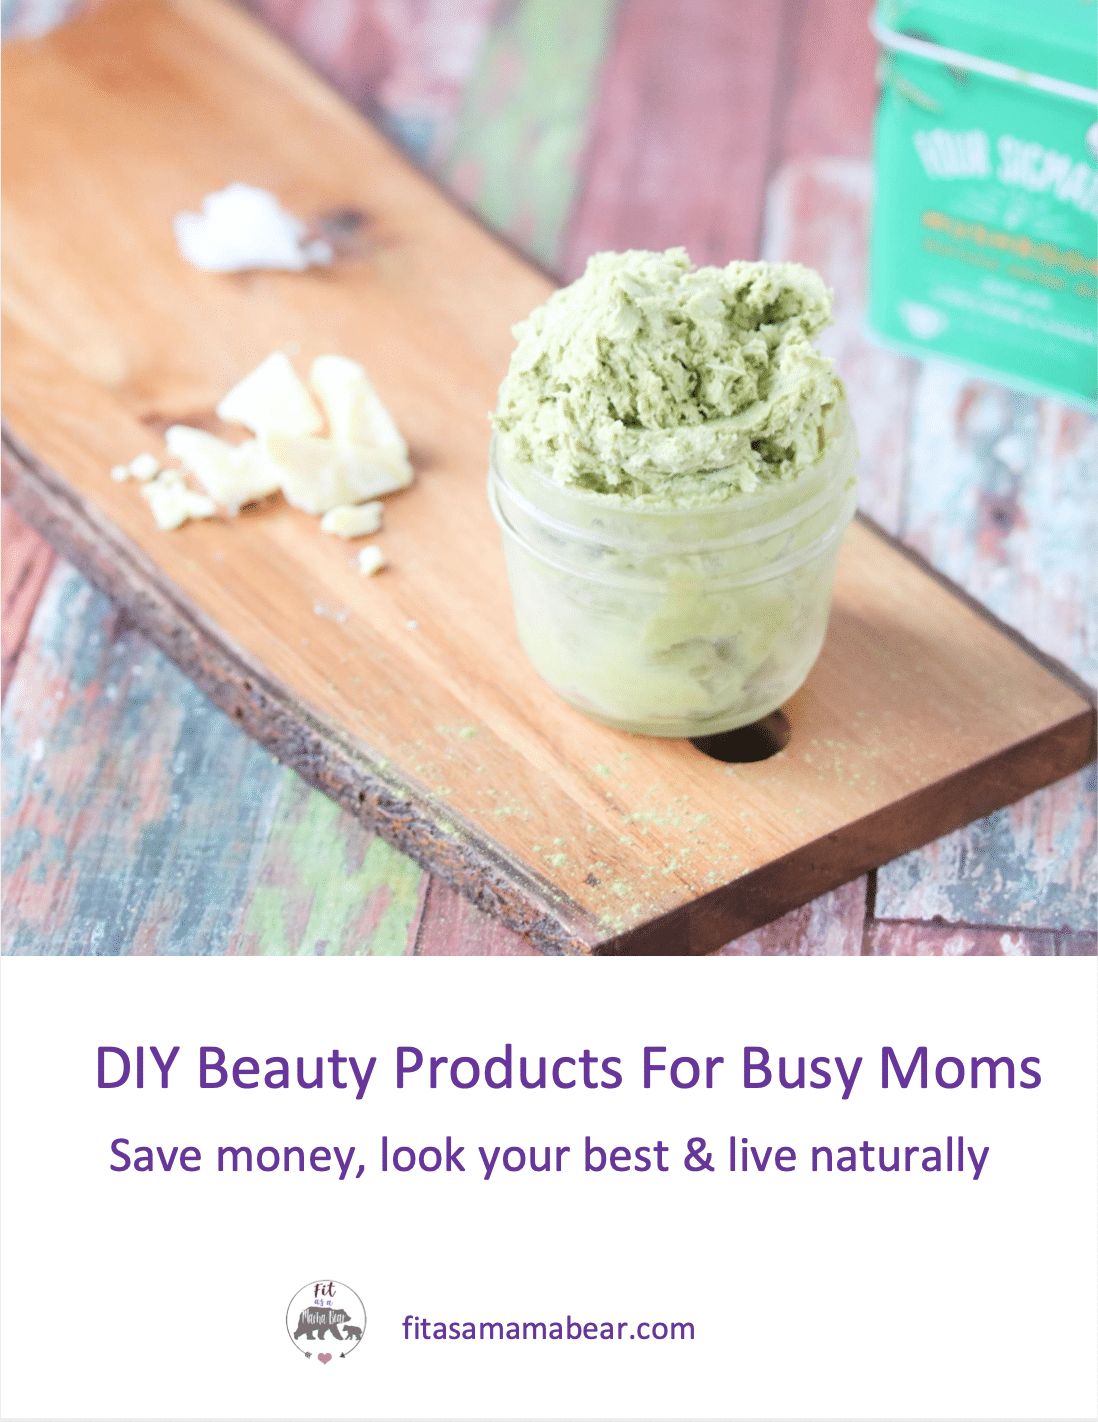 Book cover image with text: homemade matcha body butter in a mason jar on a cutting board. Ingredients for the butter like cacao butter and matcha around it